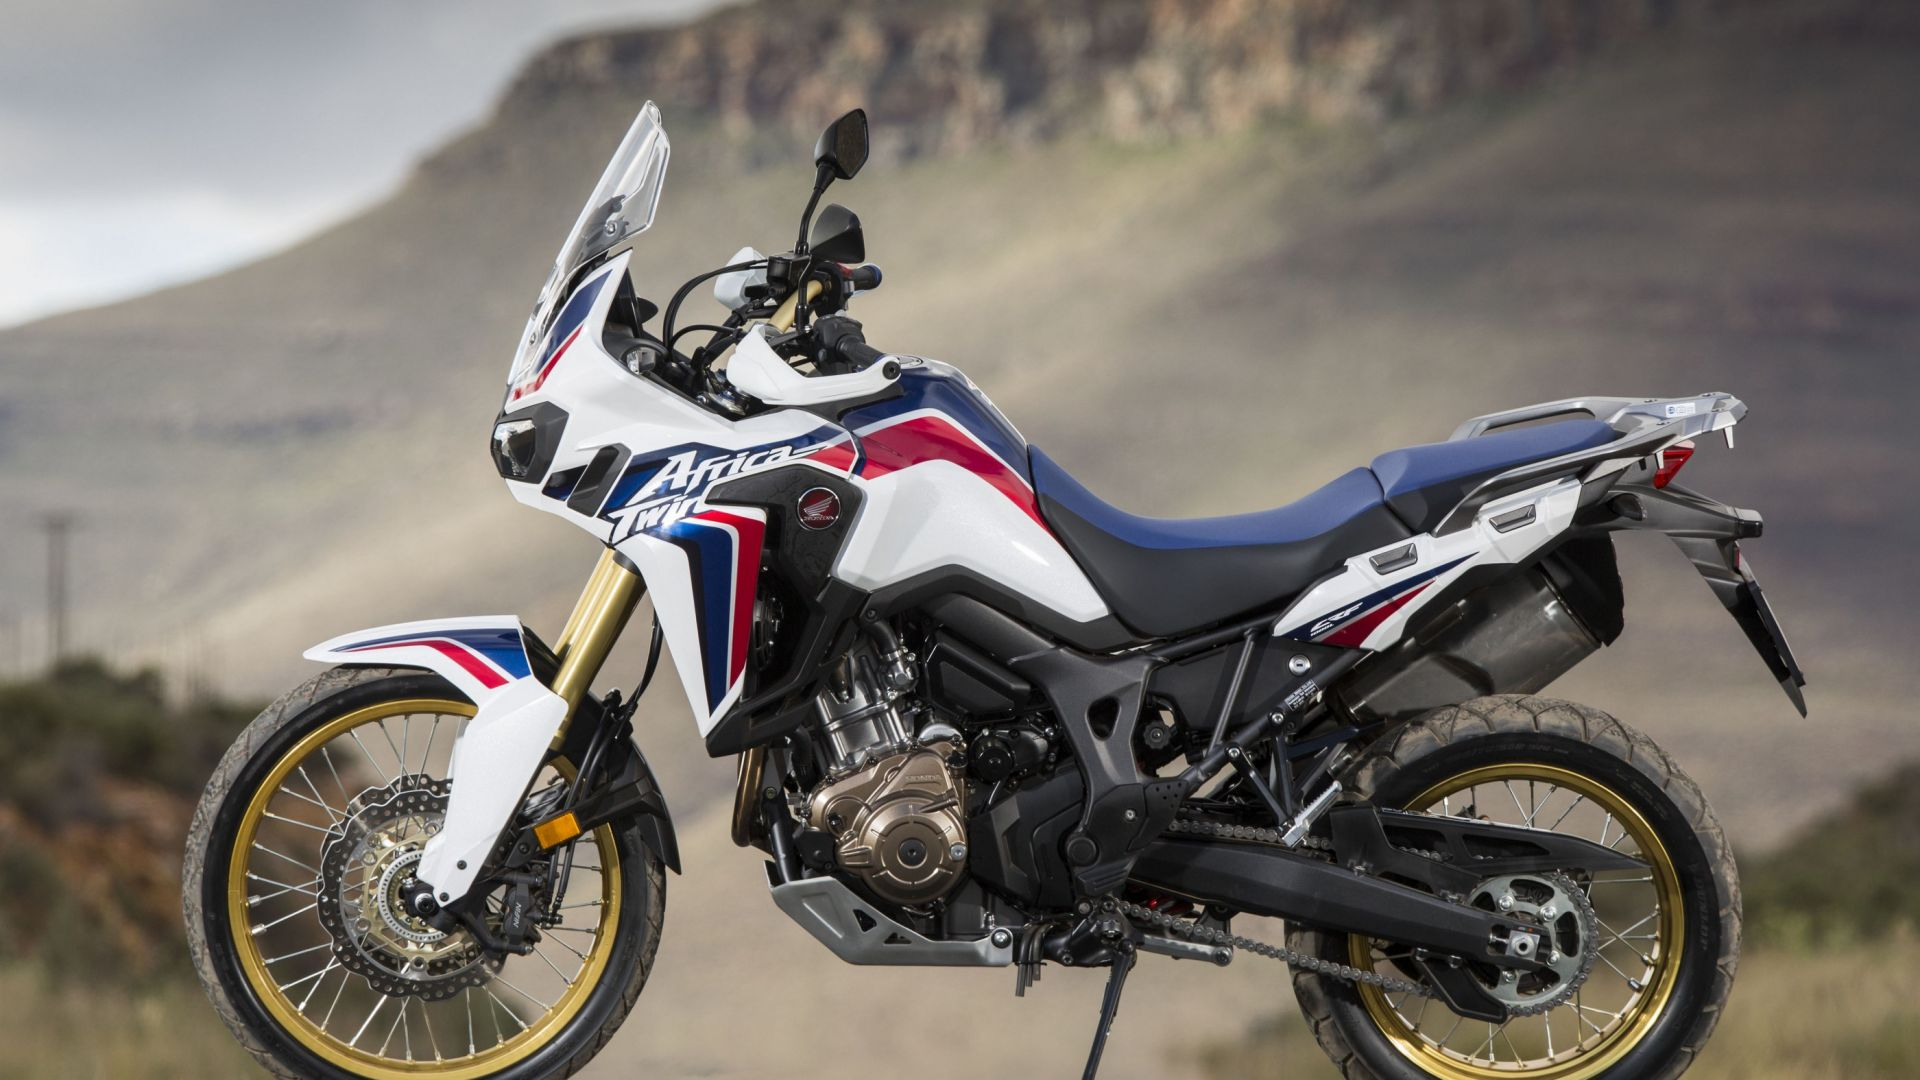 prova su strada honda africa twin 2016 motorbox. Black Bedroom Furniture Sets. Home Design Ideas